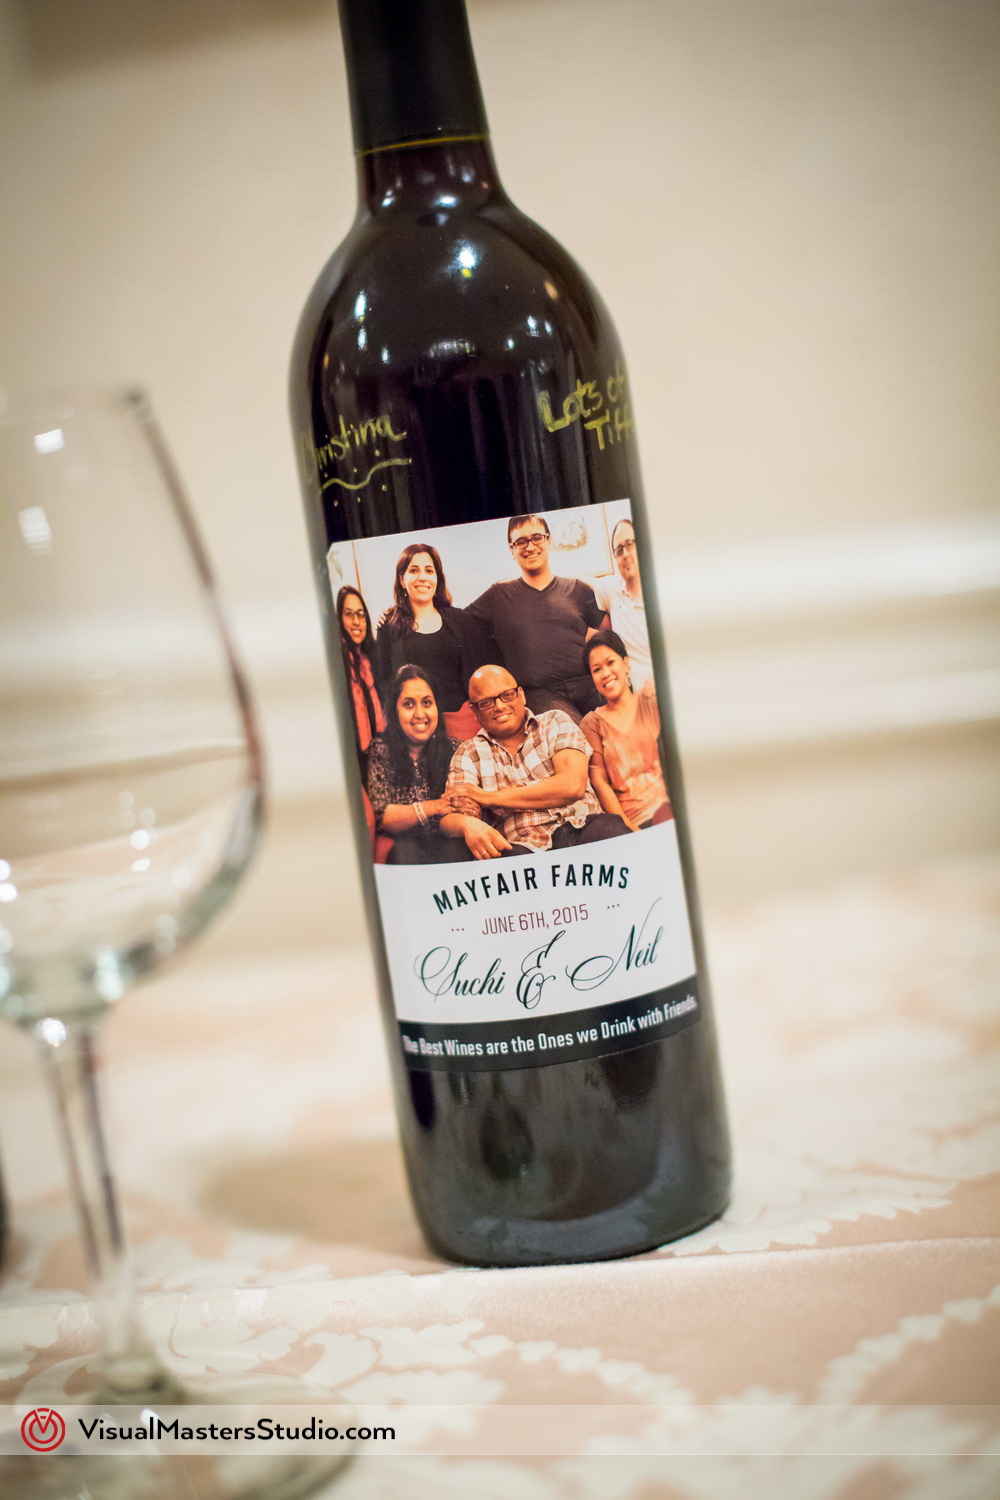 Mayfair Farms Custom Wine Bottle by Visual Masters